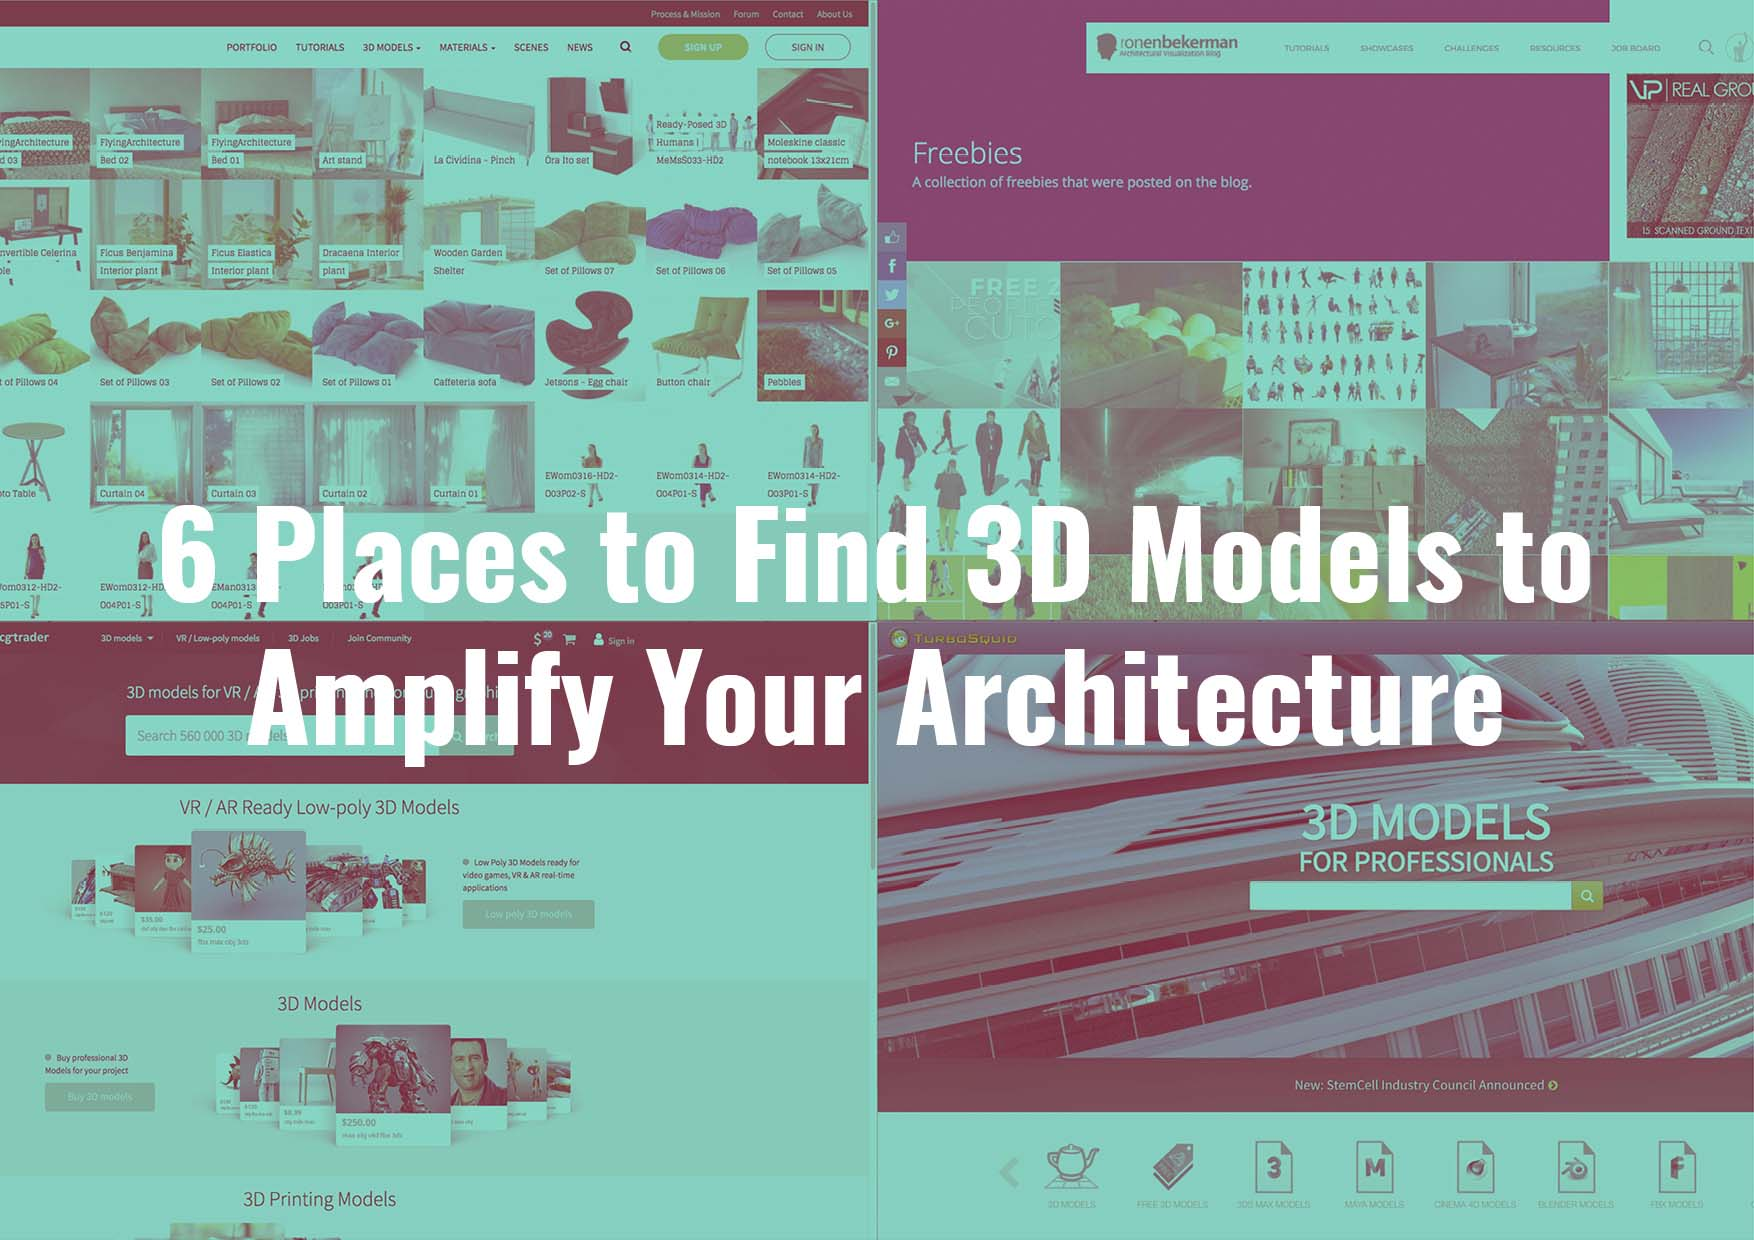 Find 3D Models to Amplify your Architecture